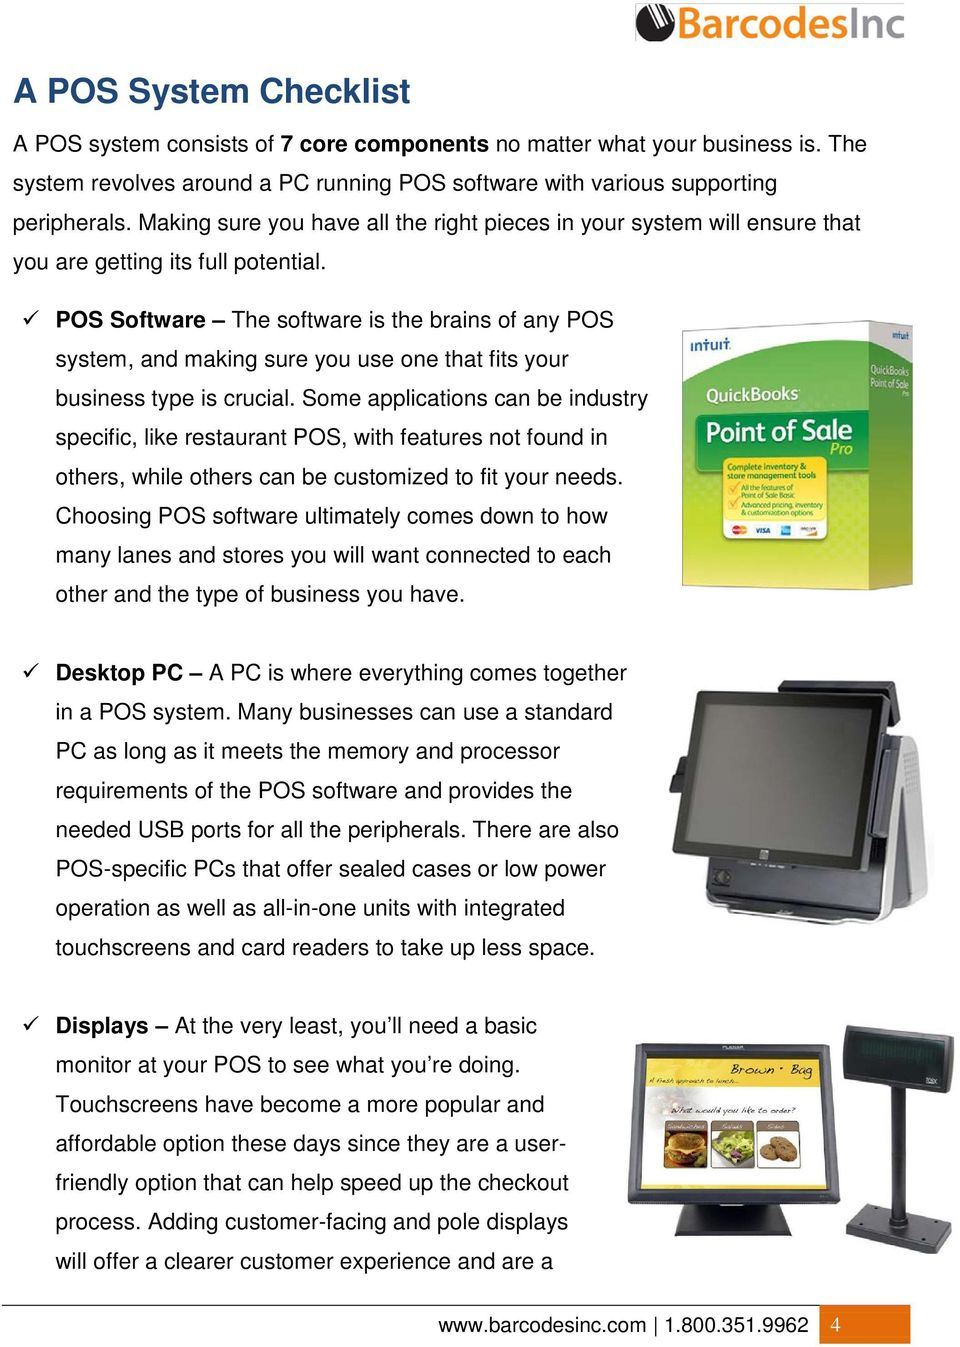 POS Software The software is the brains of any POS system, and making sure you use one that fits your business type is crucial.